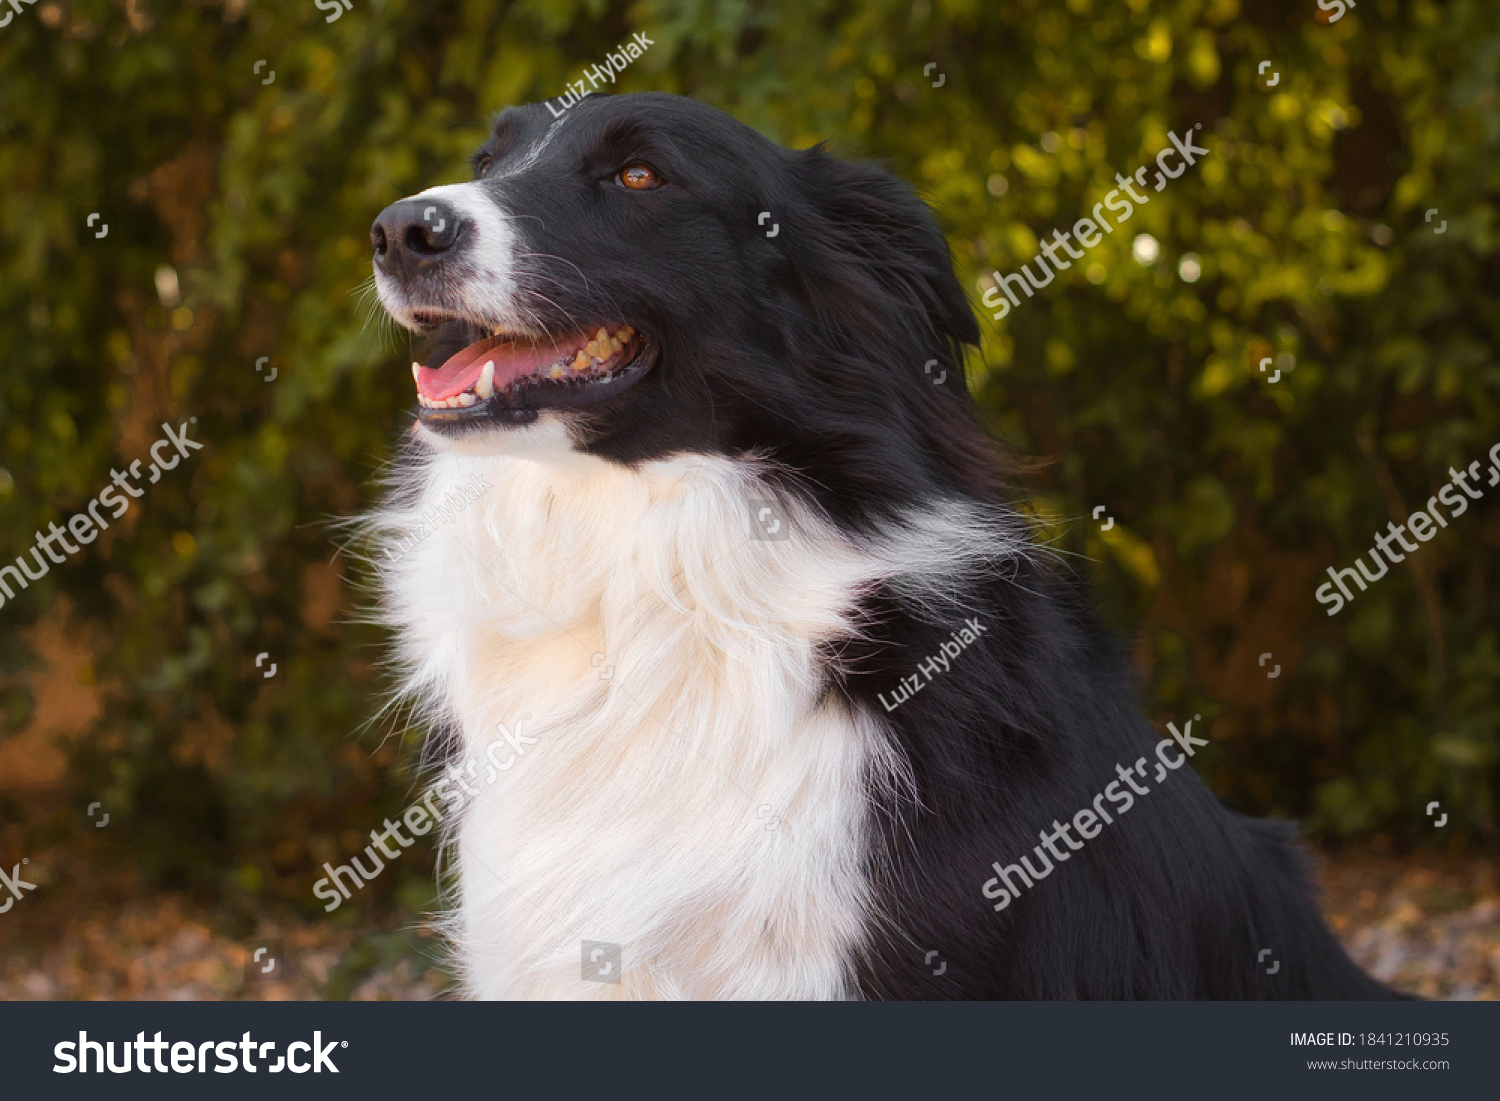 stock-photo-black-and-white-border-collie-with-partially-open-mouth-brown-bright-eyes-blurred-autumn-foliage-1841210935.jpg